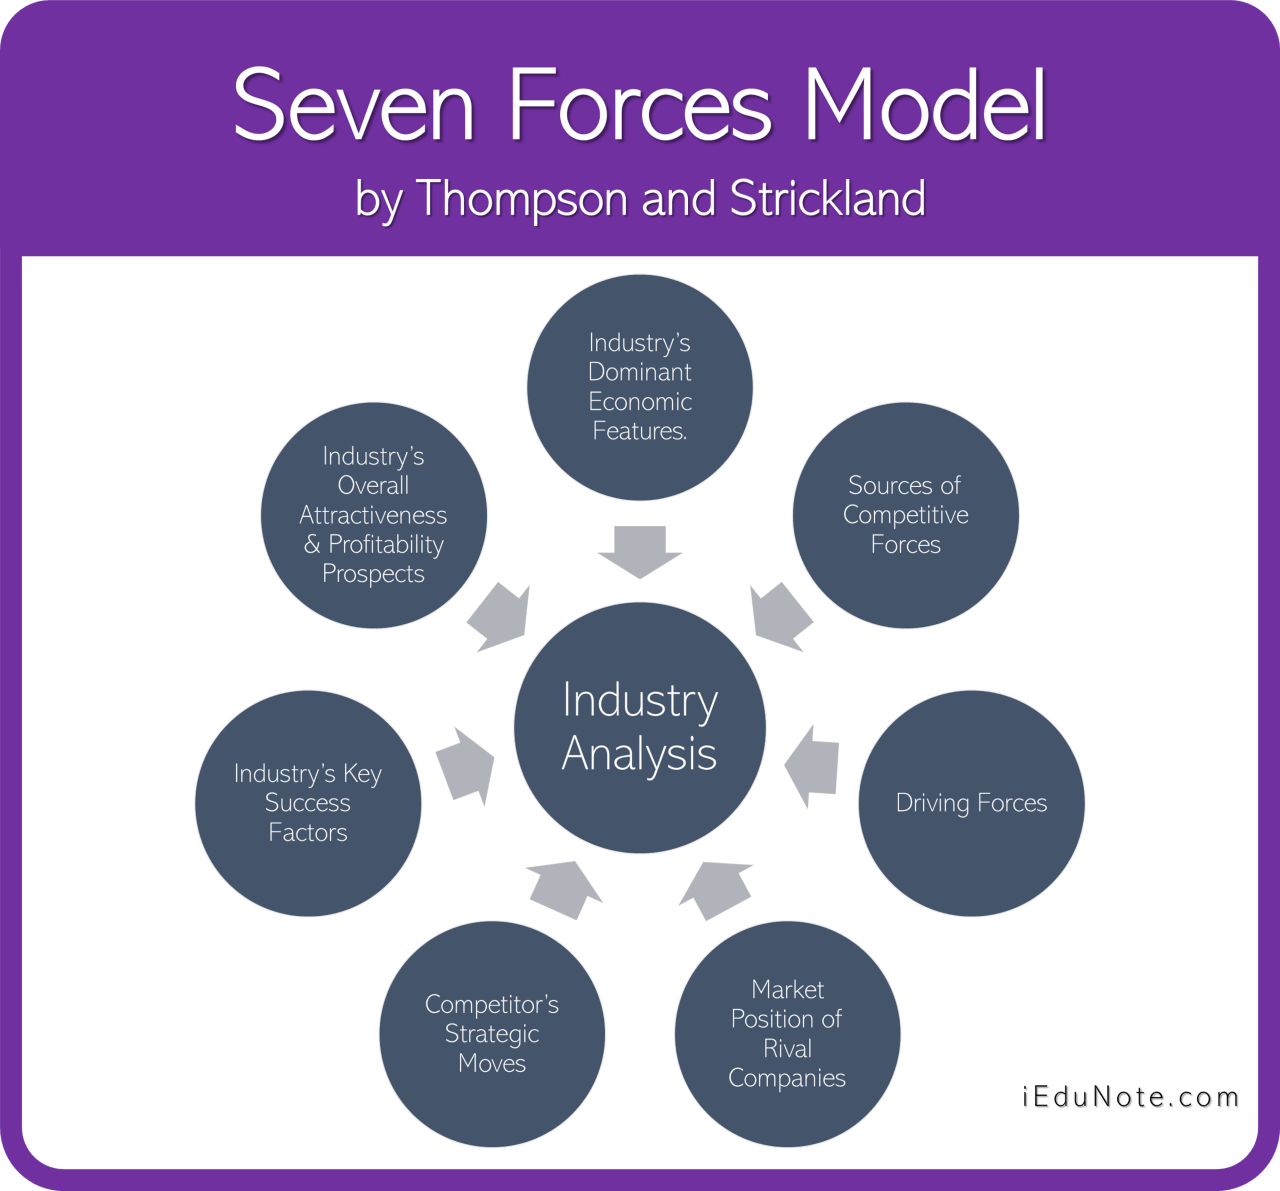 Seven Forces Model of Industry Analysis by Thompson and Strickland